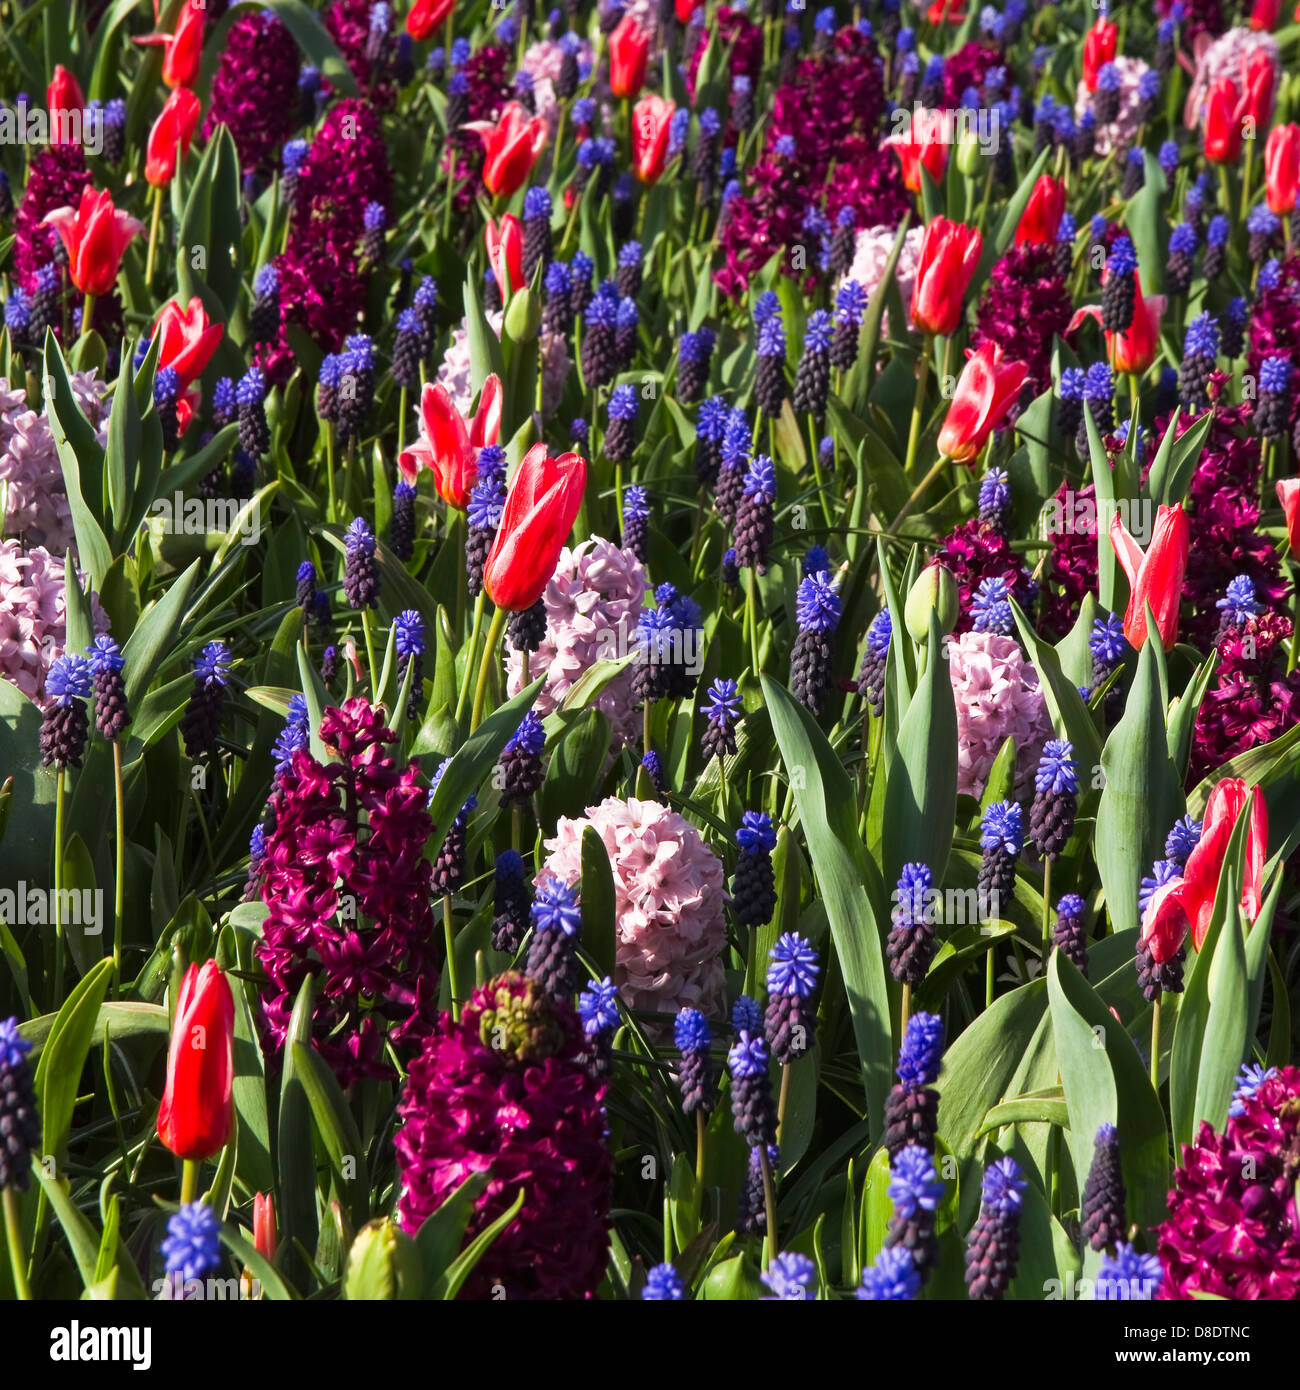 Tapestry of spring flowers - tulips, hyacinths and grape hyacinths in cool colors - Stock Image